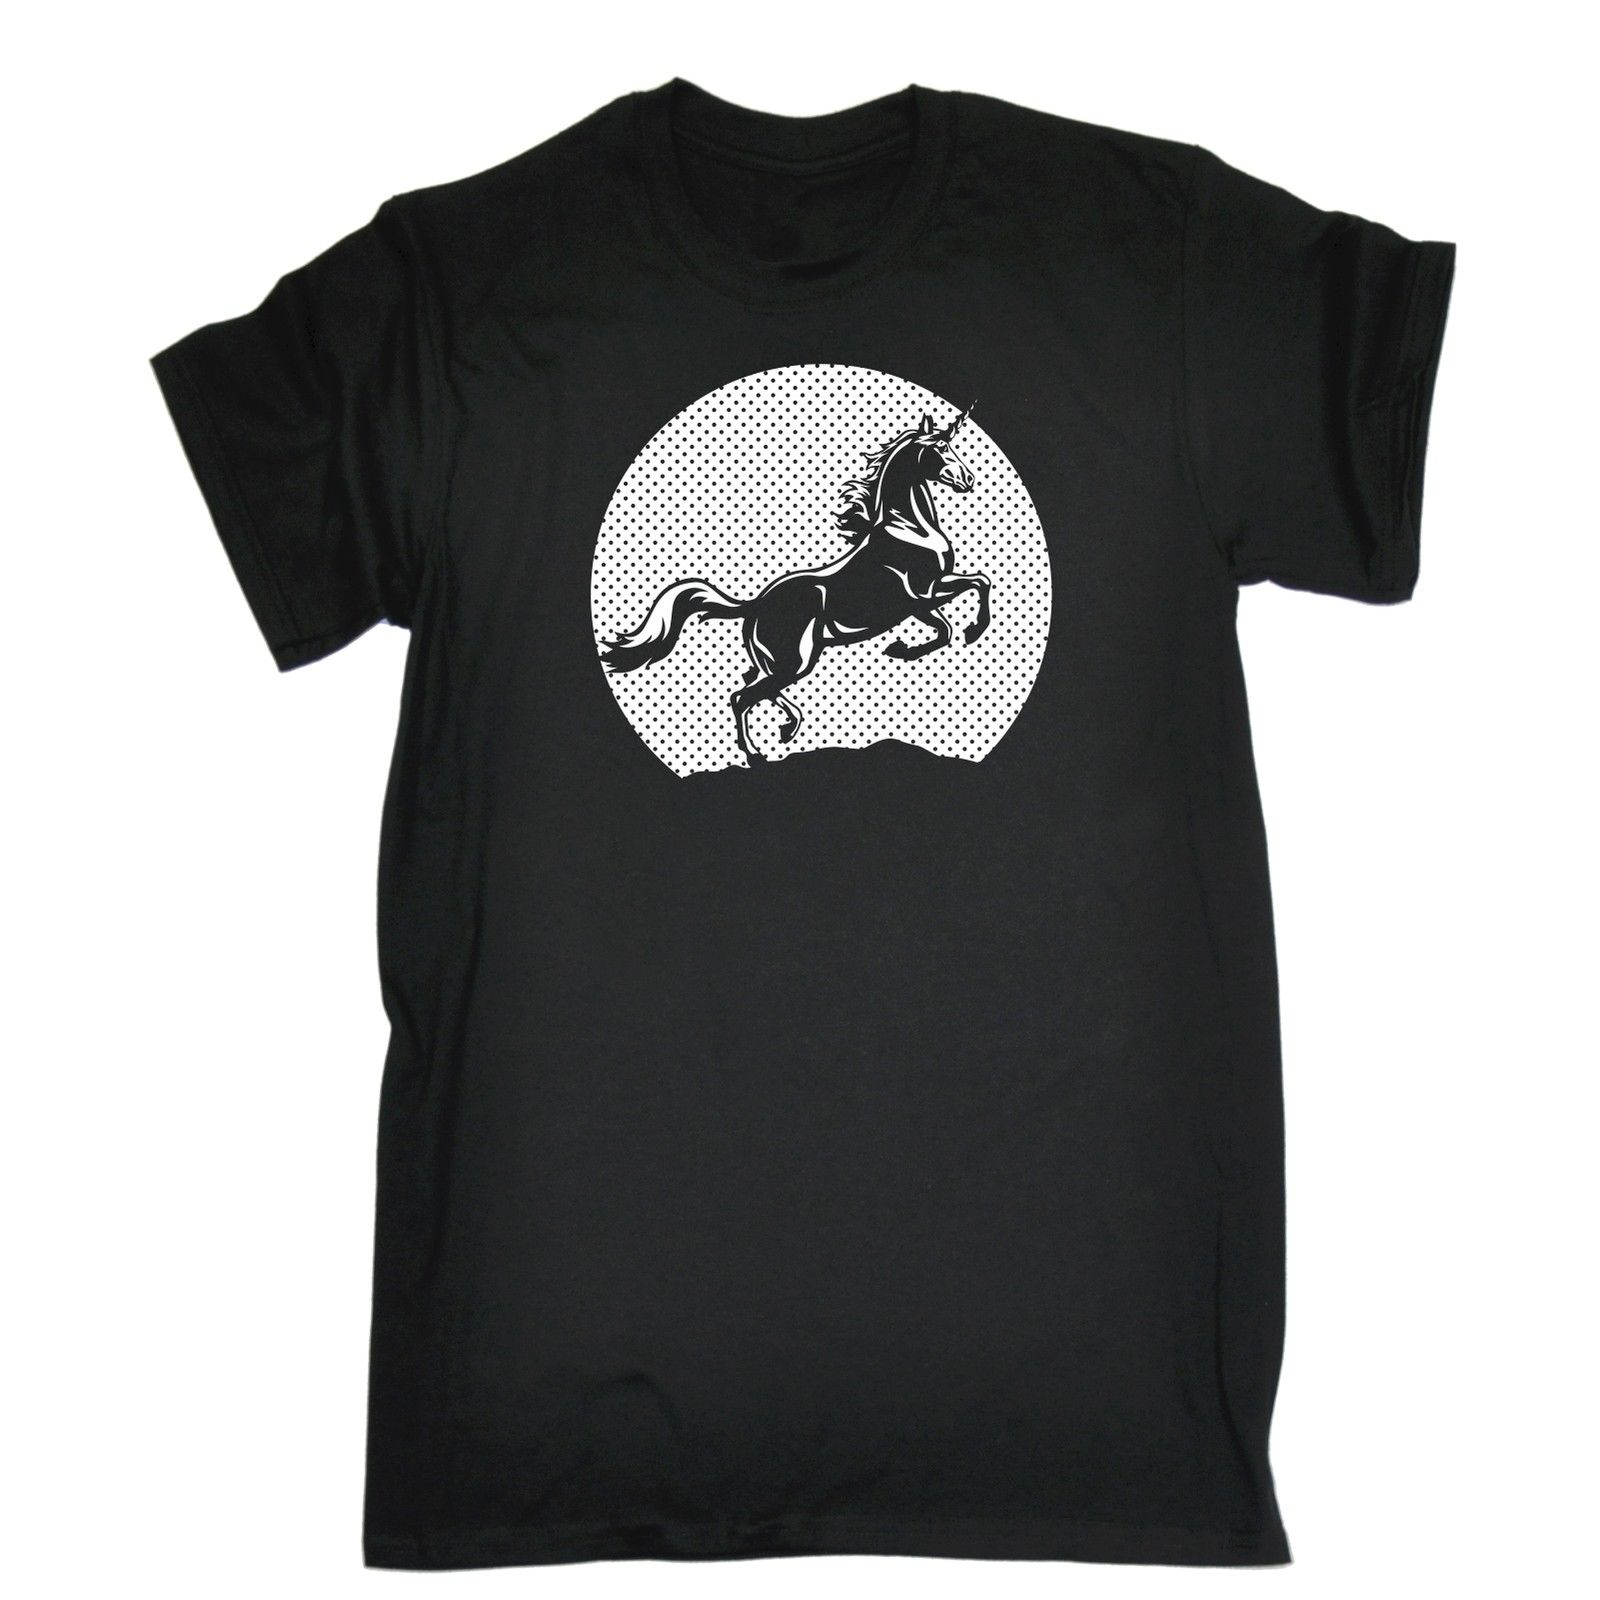 Gildan Sunset Unicorn MENS T-SHIRT Horse Magical Funny Birthday Gift Present Him New T Shirts Unisex Funny Tops Tee Anime